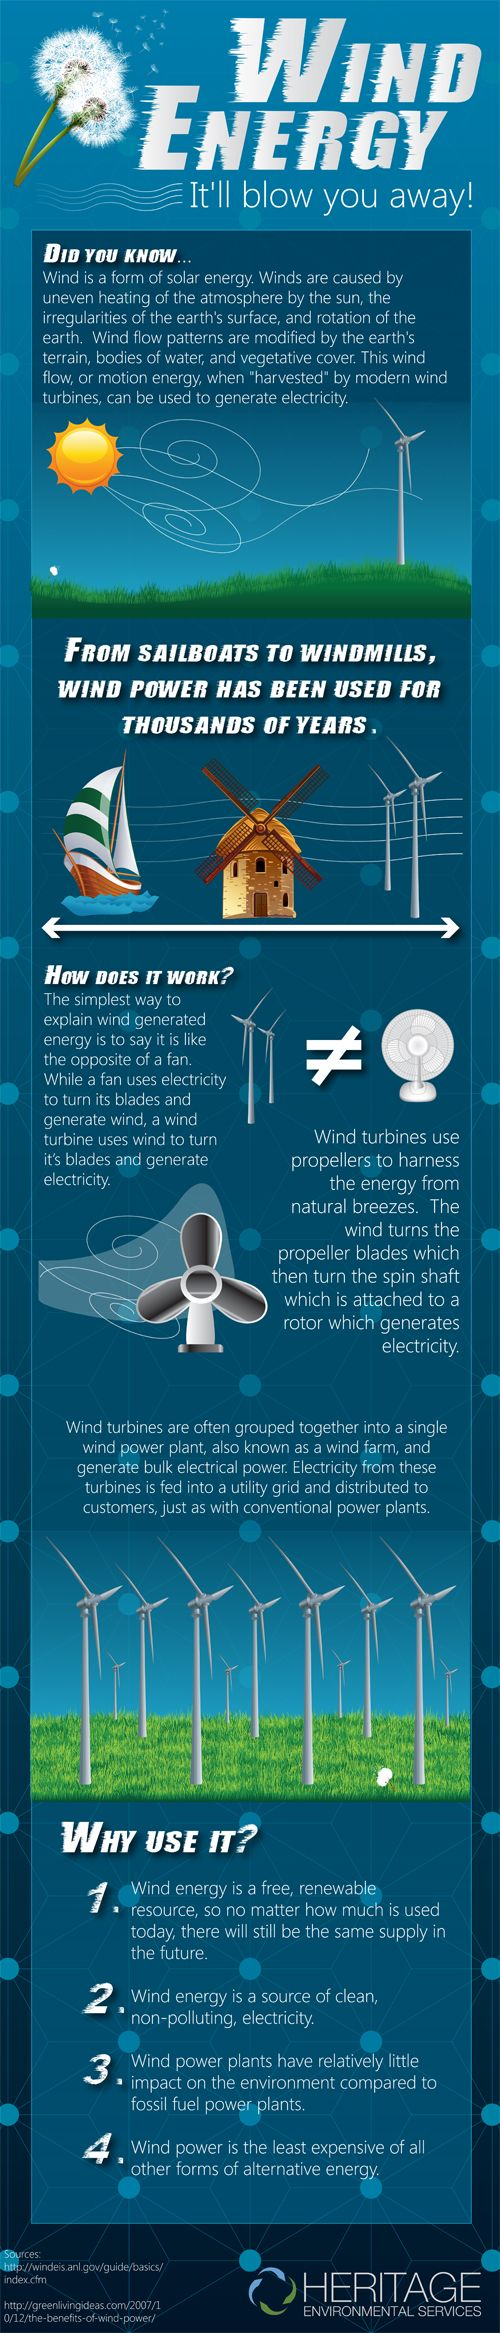 """#WindEnergy"" 